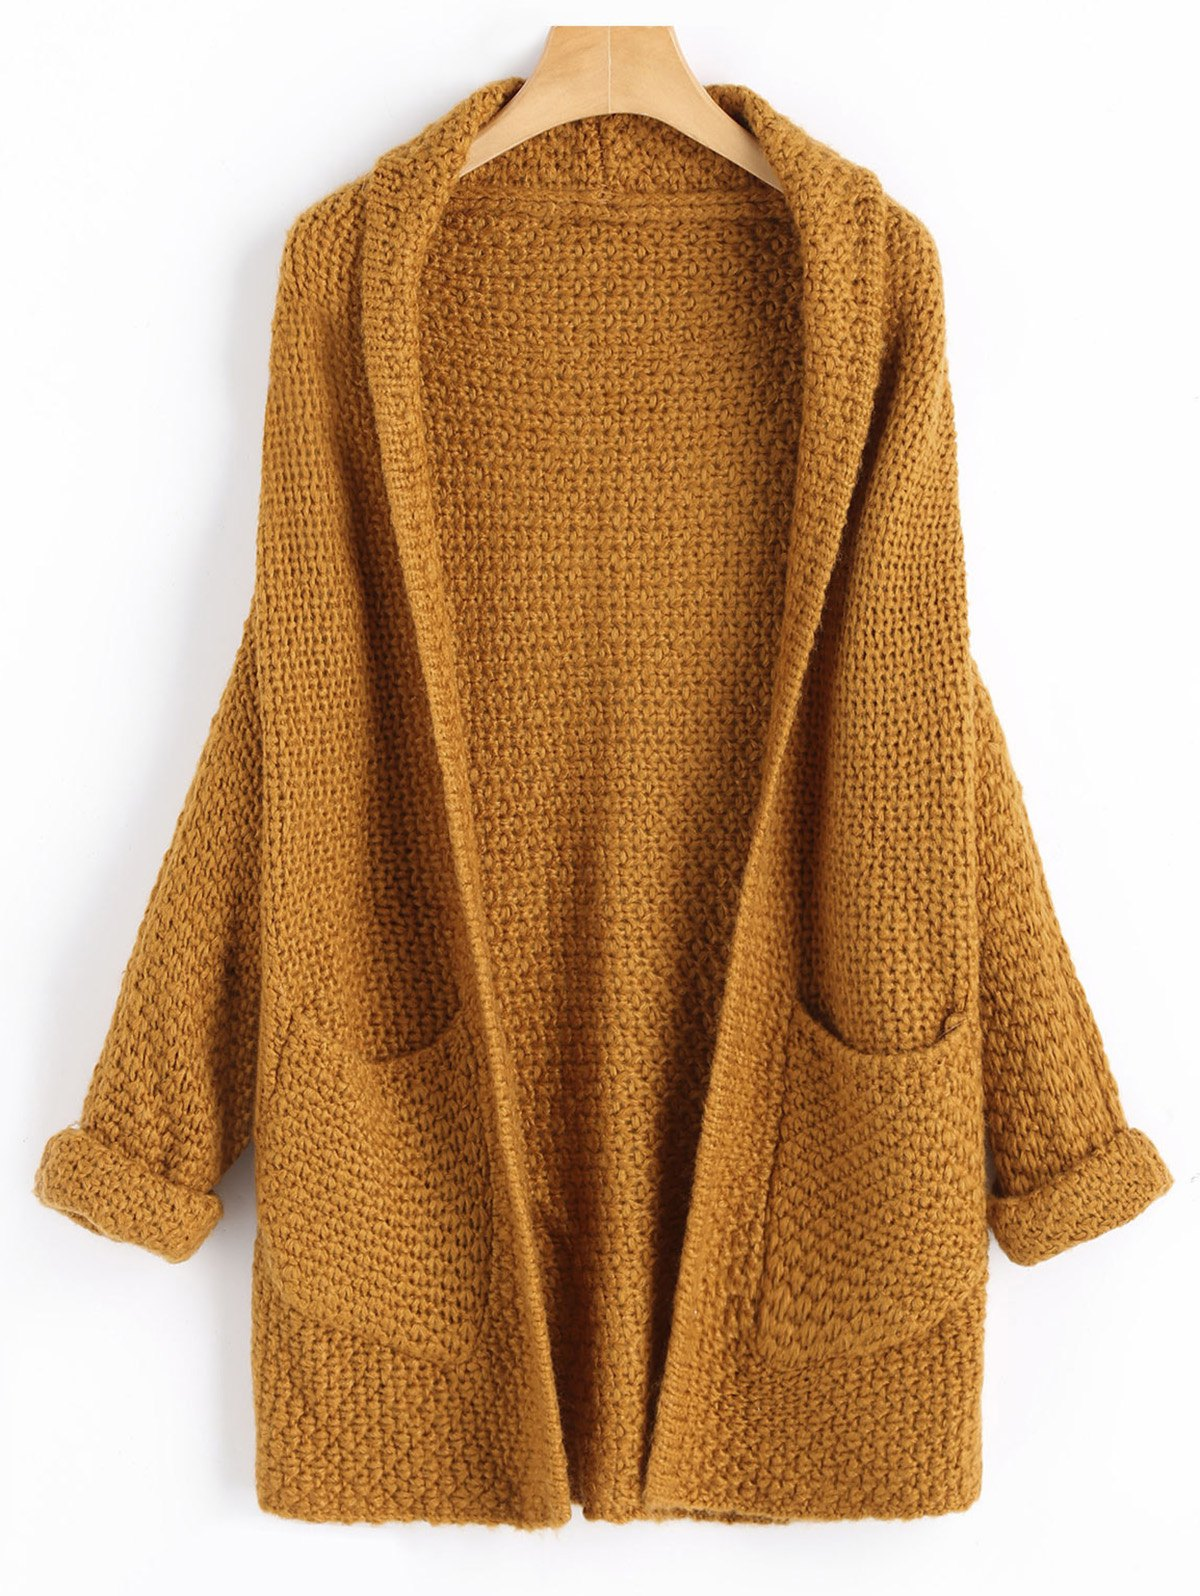 Open Front Curled Sleeve Batwing CardiganWOMEN<br><br>Size: ONE SIZE; Color: LIGHT COFFEE; Type: Cardigans; Material: Acrylic,Cotton,Polyester; Sleeve Length: Full; Collar: Shawl Collar; Style: Fashion; Pattern Type: Solid; Weight: 0.6700kg; Package Contents: 1 x Cardigan;